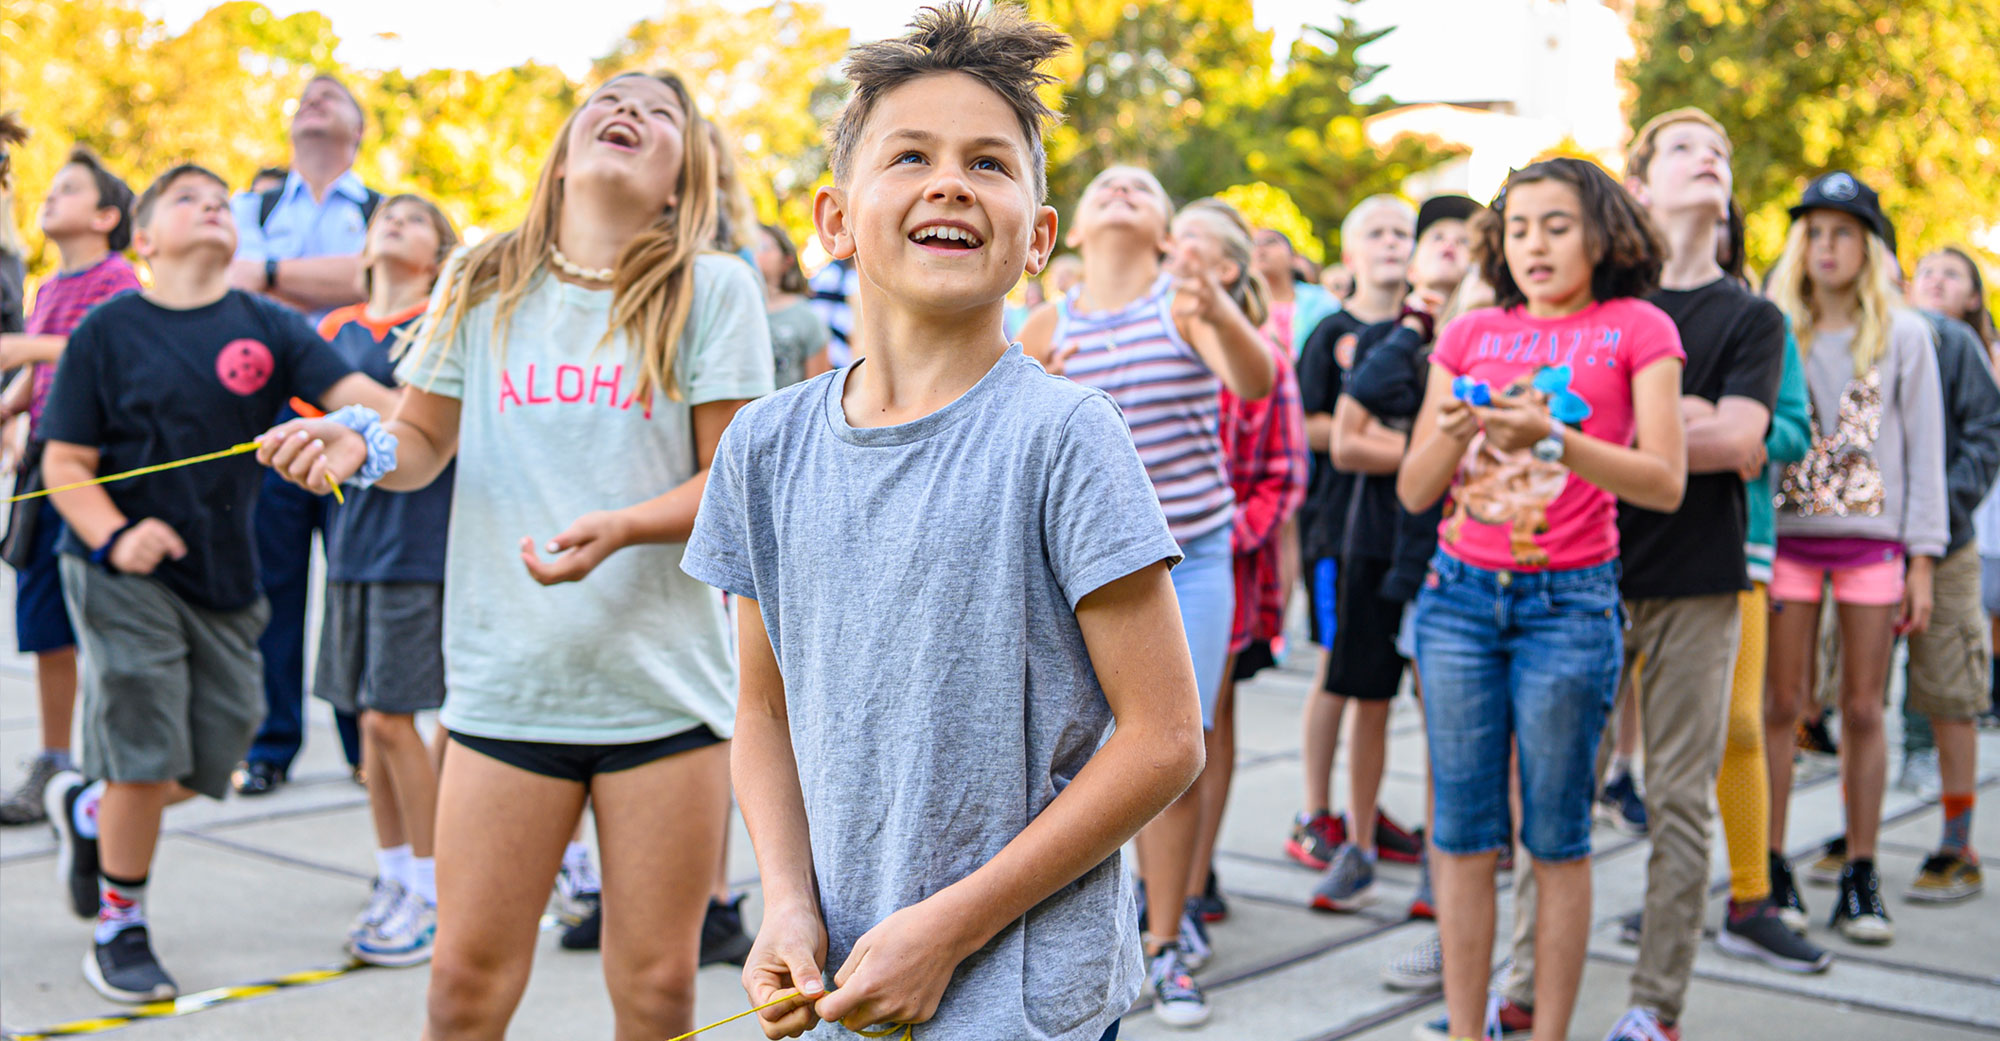 Discover NPS Day 2019 Story Image - Kids launching bottle rockets